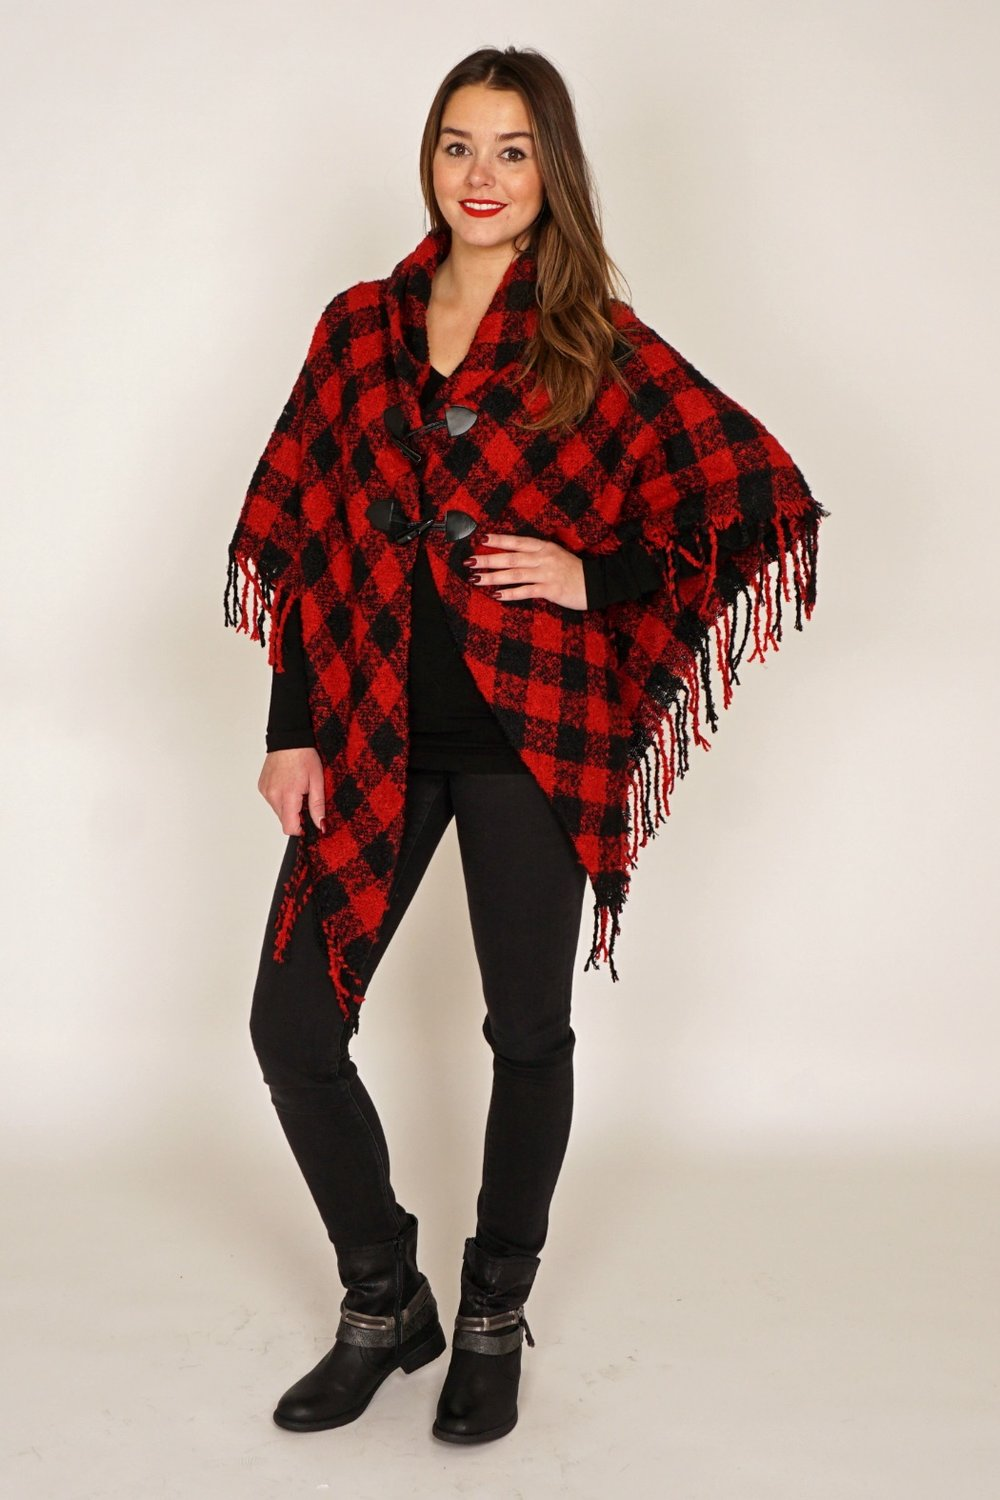 "There's always a must-have accessory that EVERYONE is obsessed with. Right now, it's all about the poncho! They're warm and cozy but stylish and chic. They can be long, cropped, colourful, or classic but every style gives such an ""I know what I'm doing"" look. You put on a poncho and suddenly you feel more chic and put together. It works well with nearly everything in your wardrobe. Ponchos can be tailored for a chic, formal and/or professional style or be bohemian in thicker knits, colourful patterns, and/or tassels and fringes."